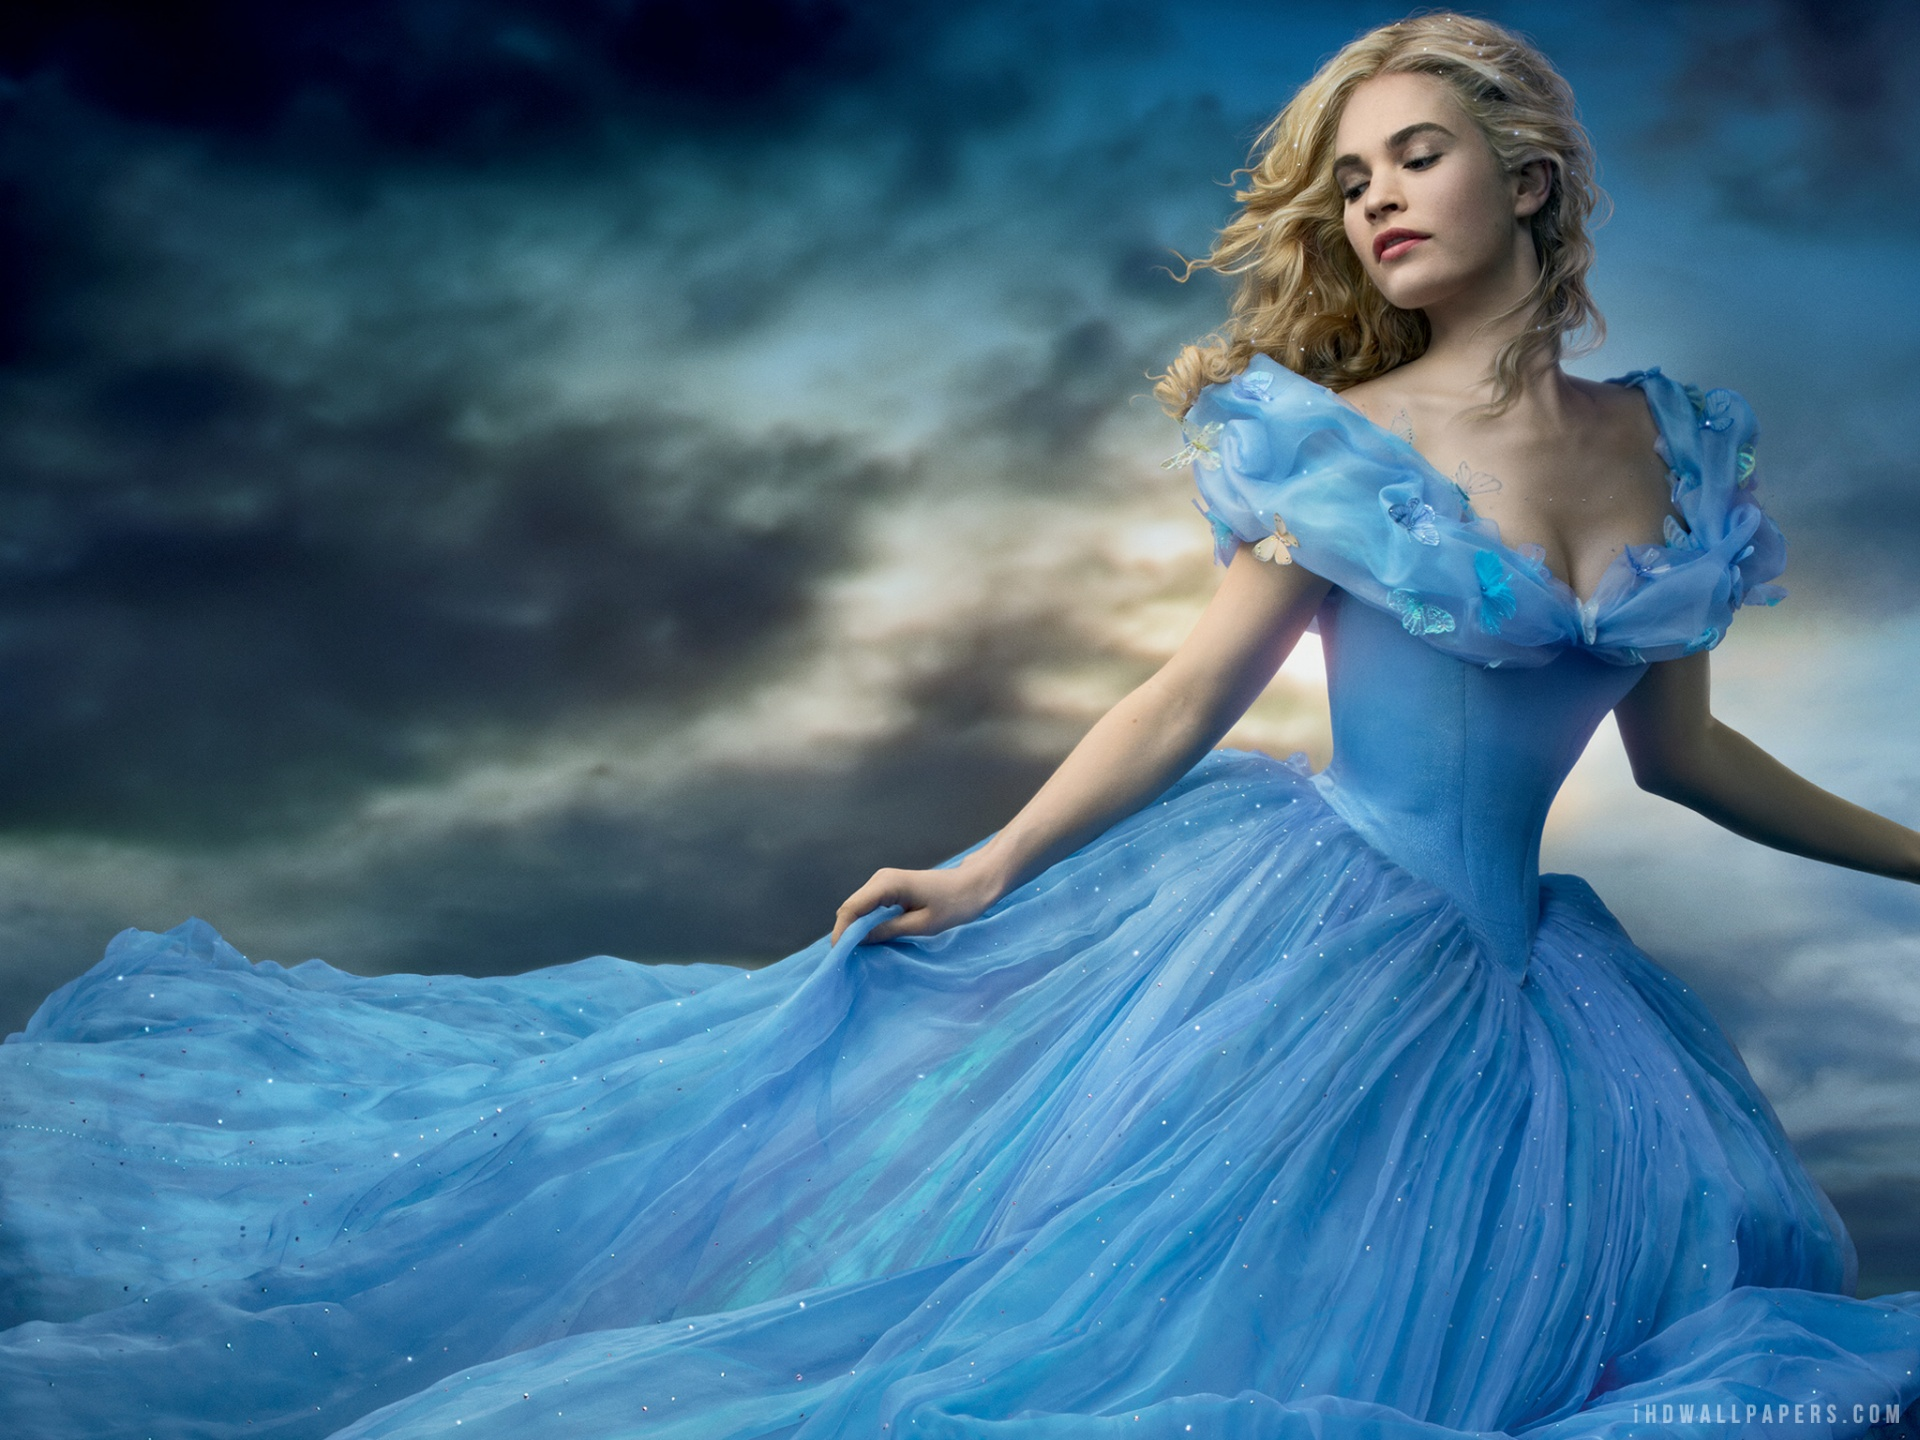 Cinderella 2015 Movie Wallpaper 1920x1440